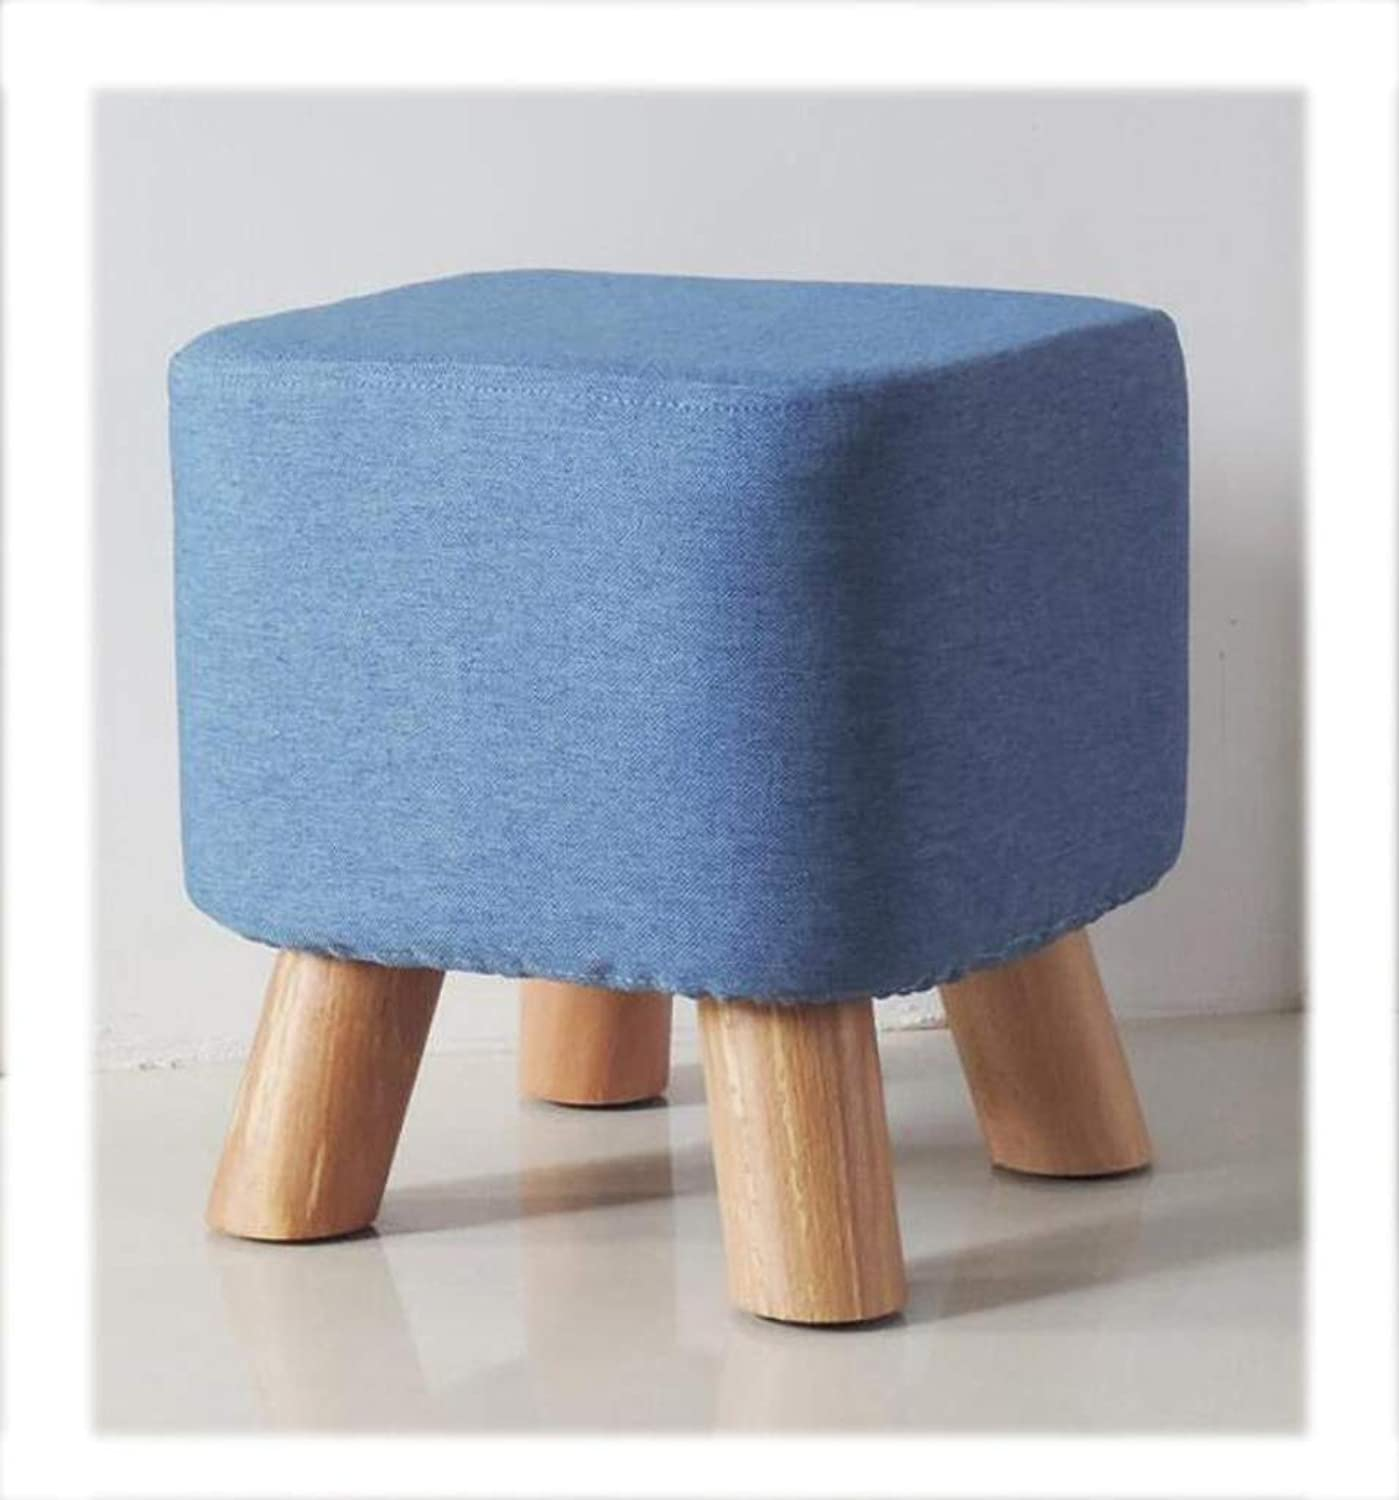 Footstool Small Stool Solid Wood Simple Modern shoes Bench Home Coffee Table Stool Fabric Sofa Stool Low Pouffe Sofa Stool for Kids with Wooden Leg (color   bluee)